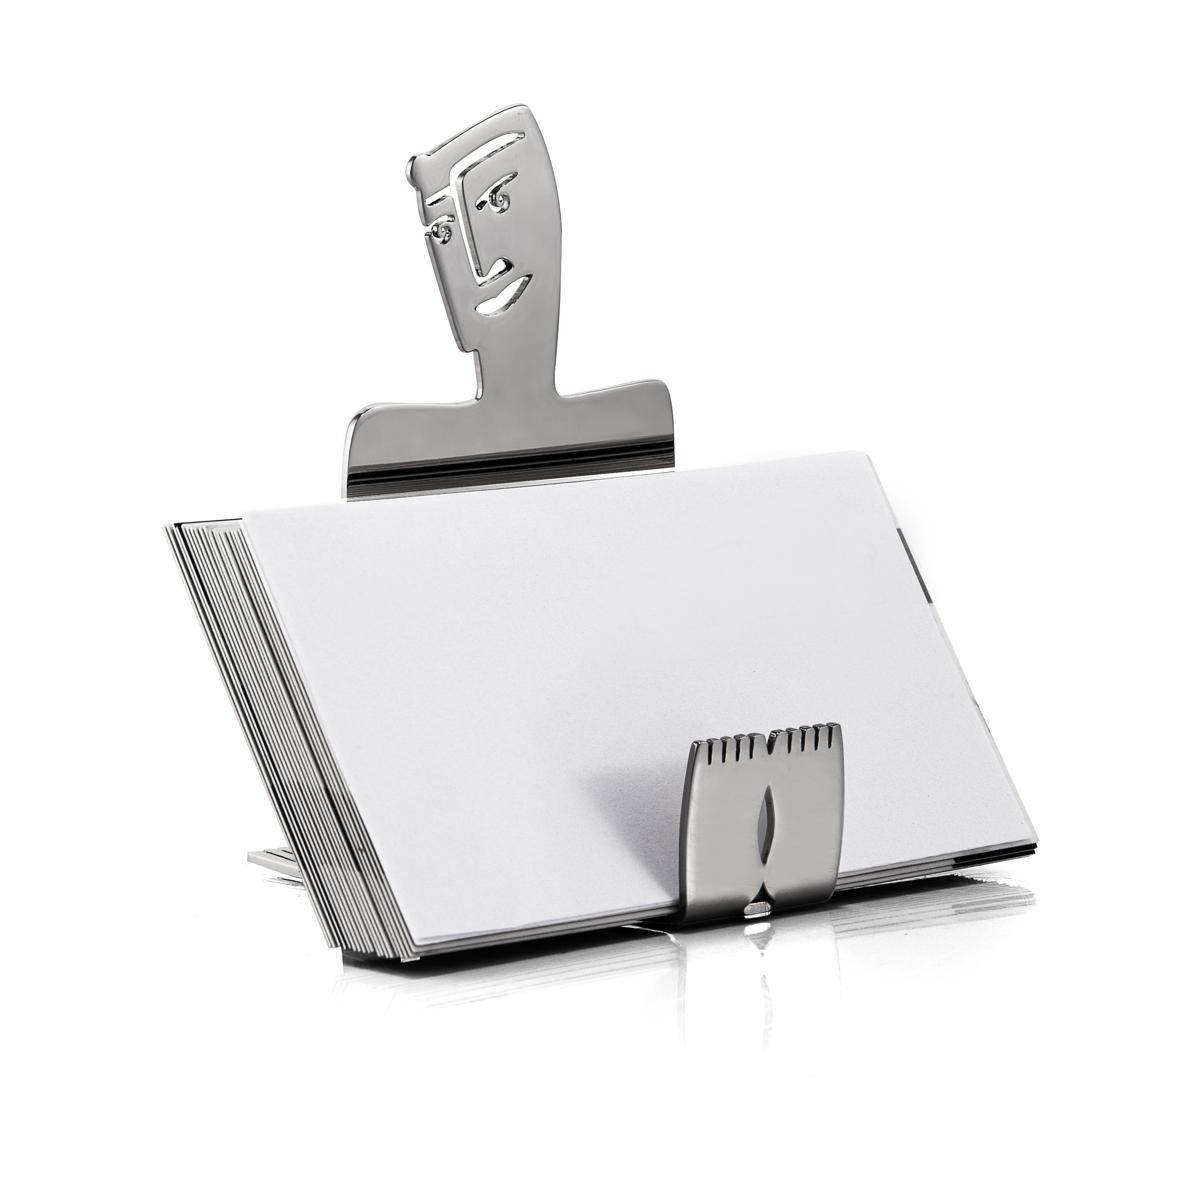 BUSINESS CARD HOLDER - face off